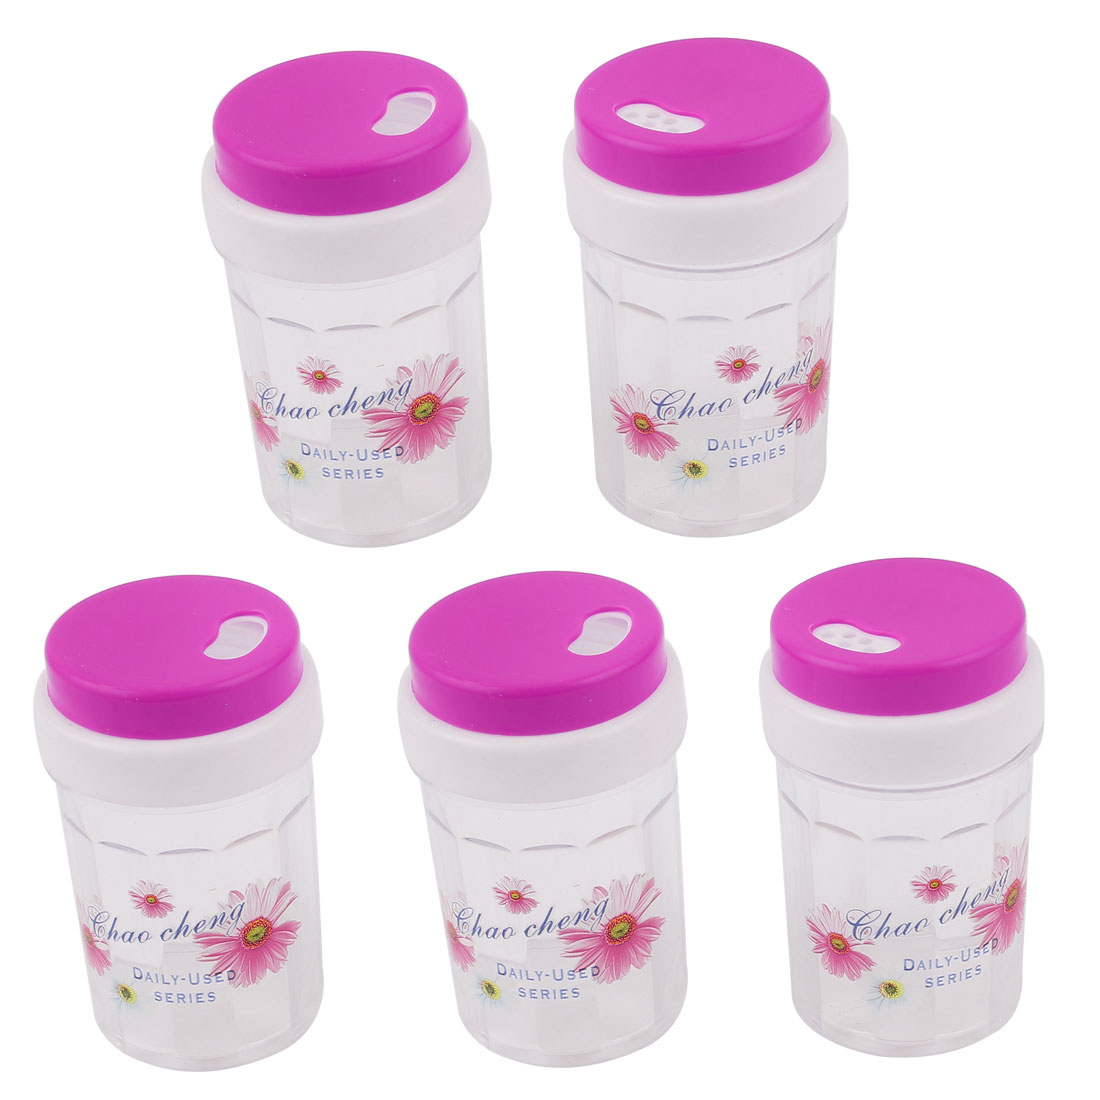 Fuchsia Plastic Spice Jar Toothpick Holder Container Dispenser 80 x 46mm 5pcs